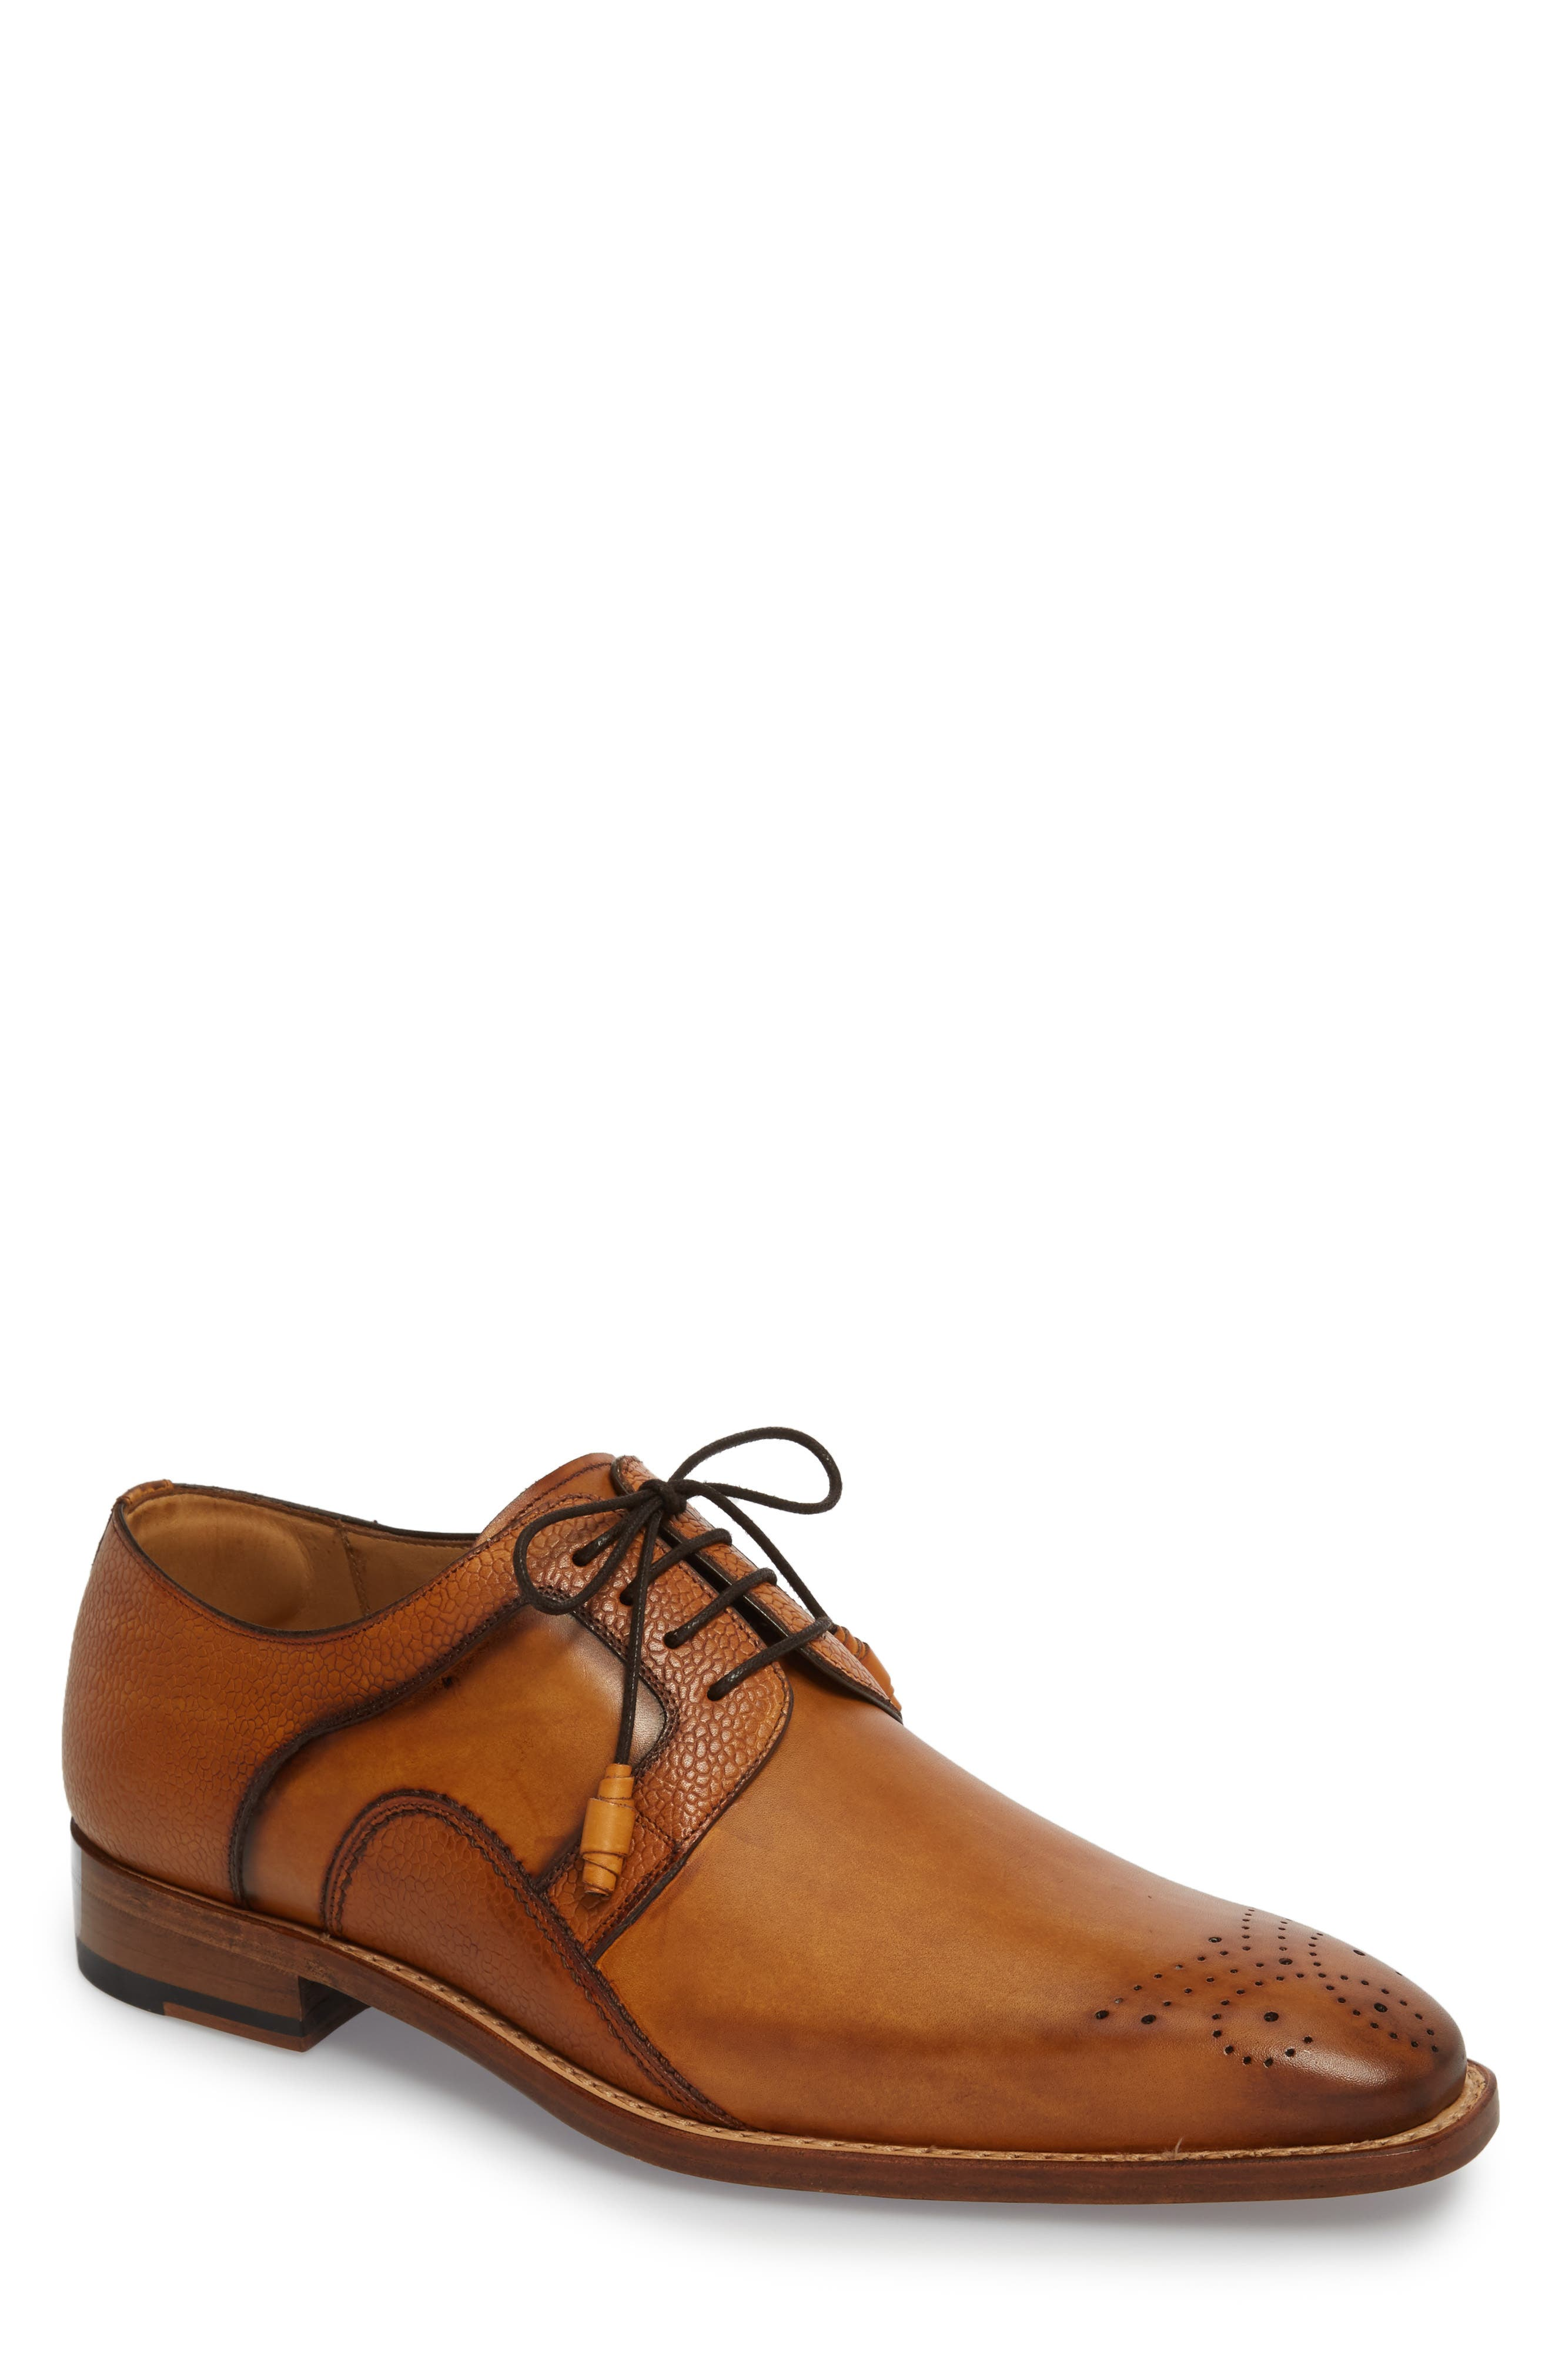 MEZLAN Saturno Medallion Toe Derby in Tan Leather